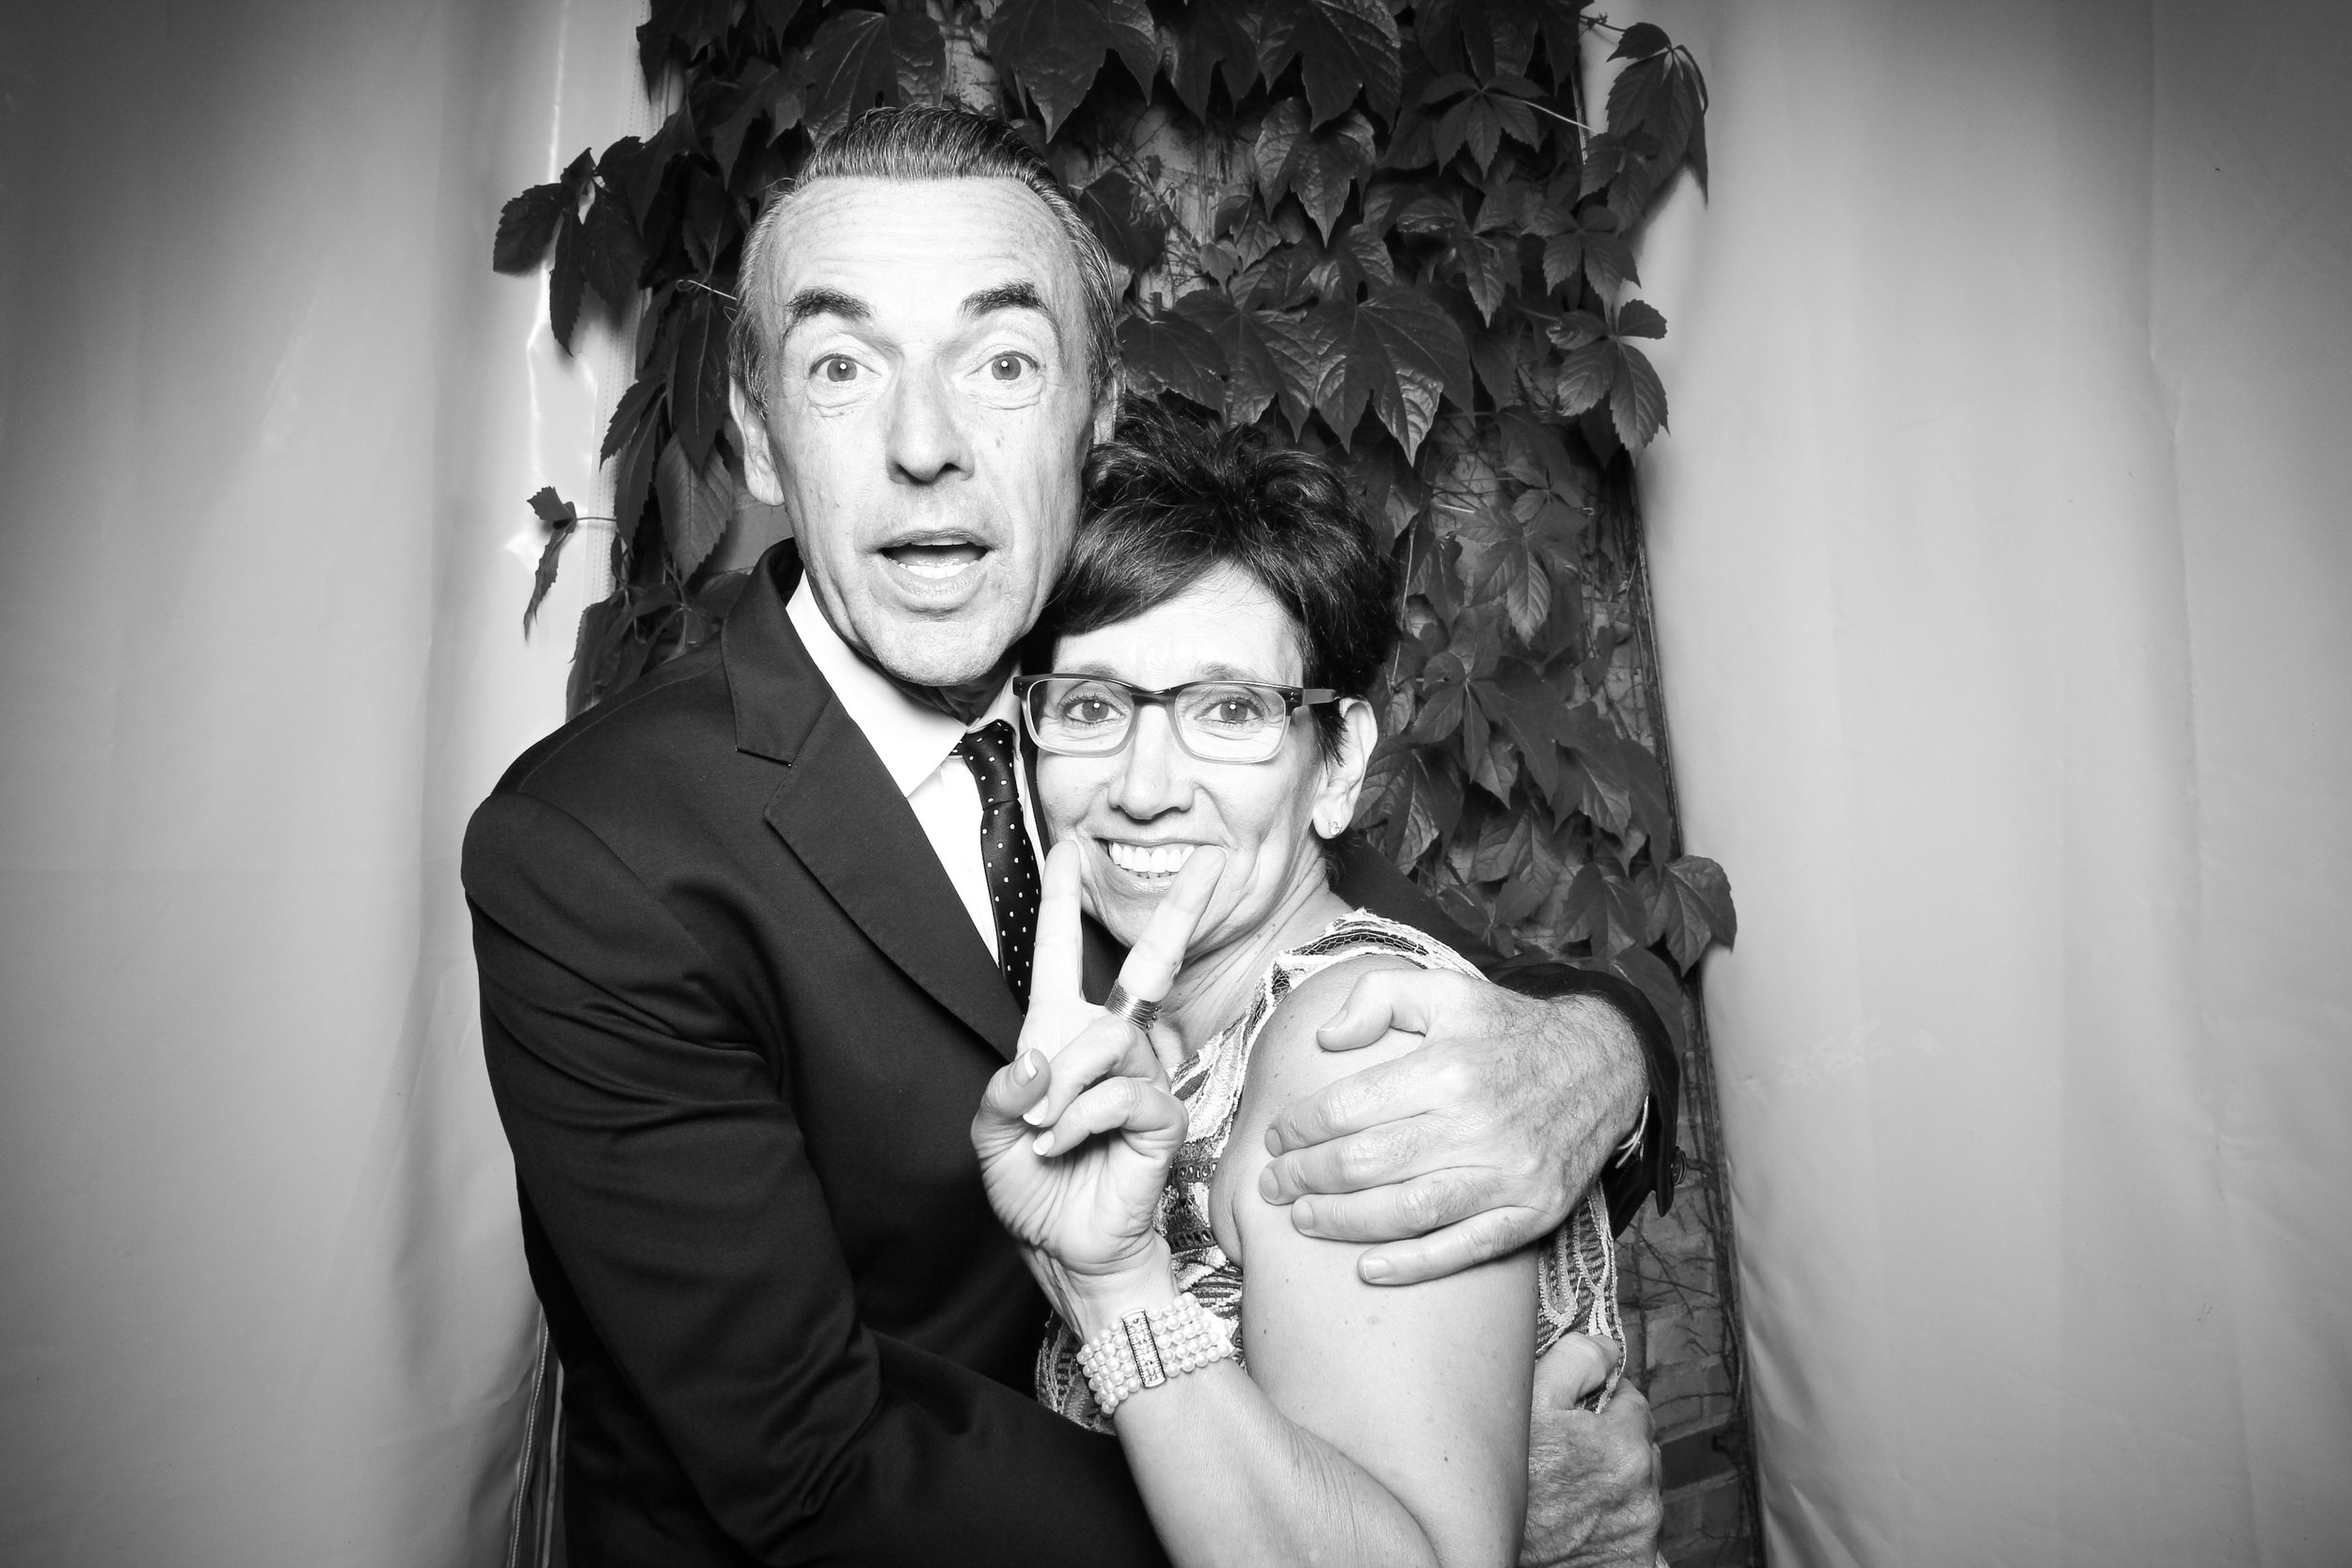 Chicago_Vintage_Wedding_Photobooth_Botanic_Garden_08.jpg